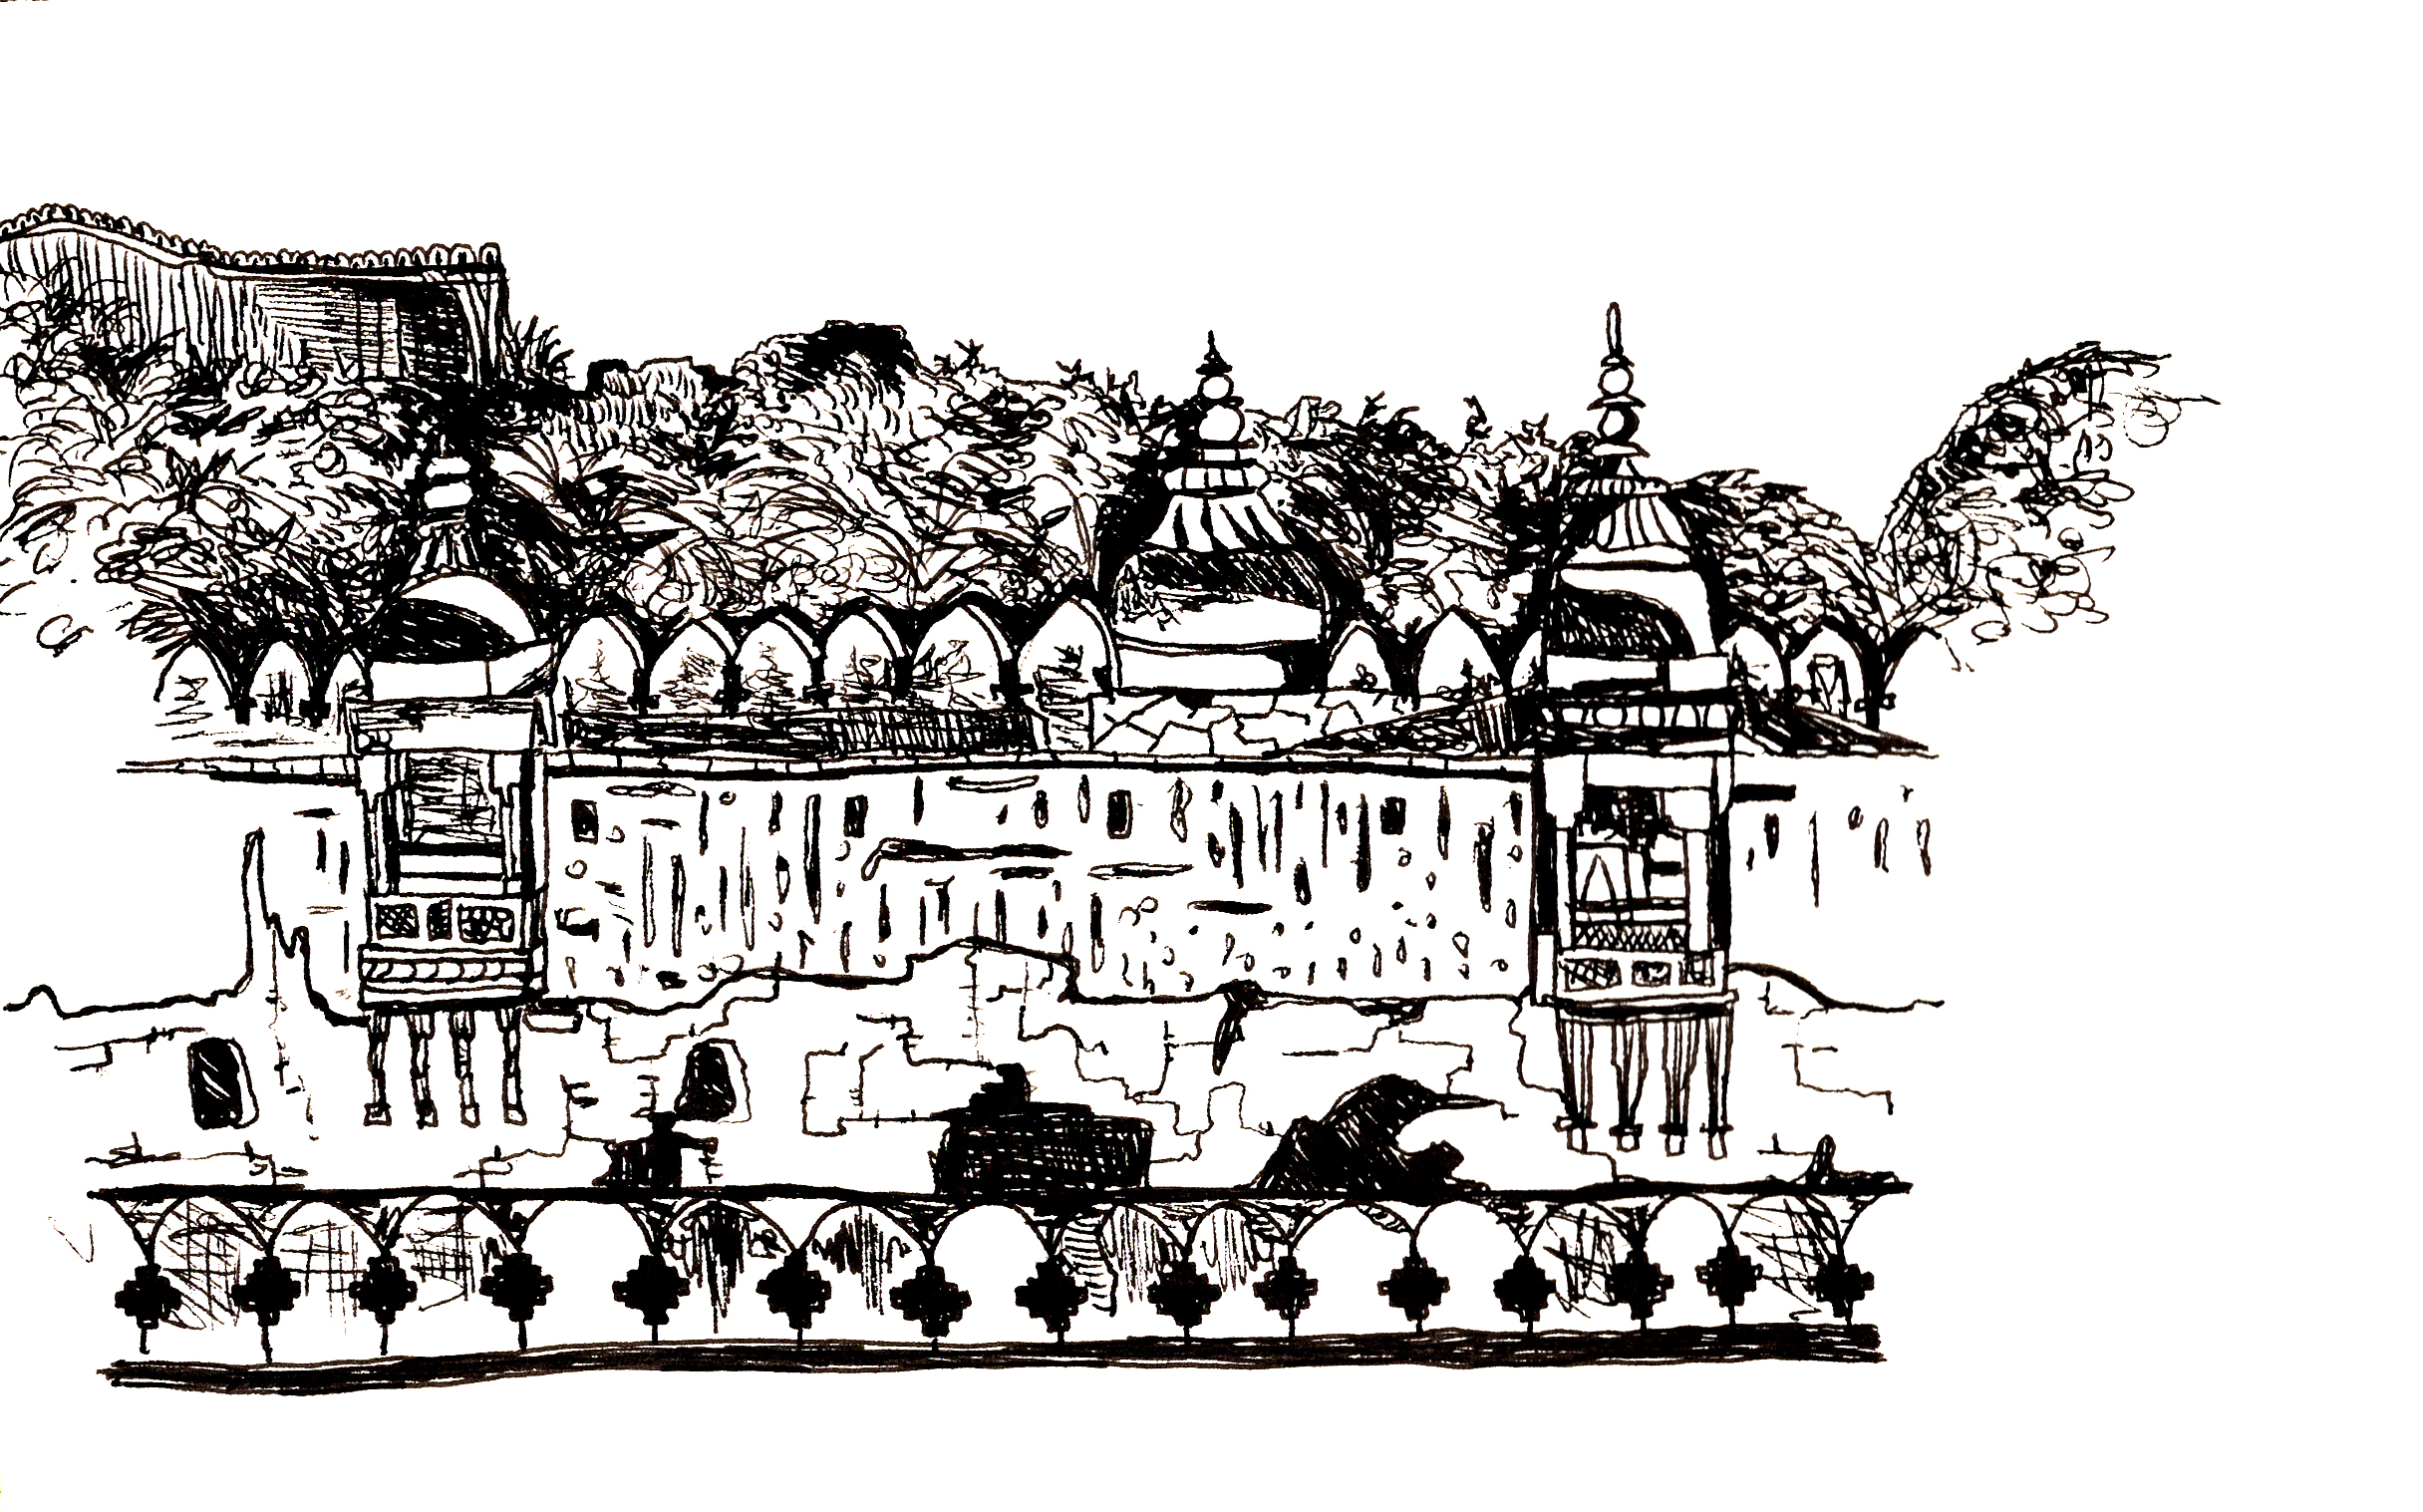 Sketchbook from a motherland trip to India: Amer Fort, Rajasthan, 2018-19.